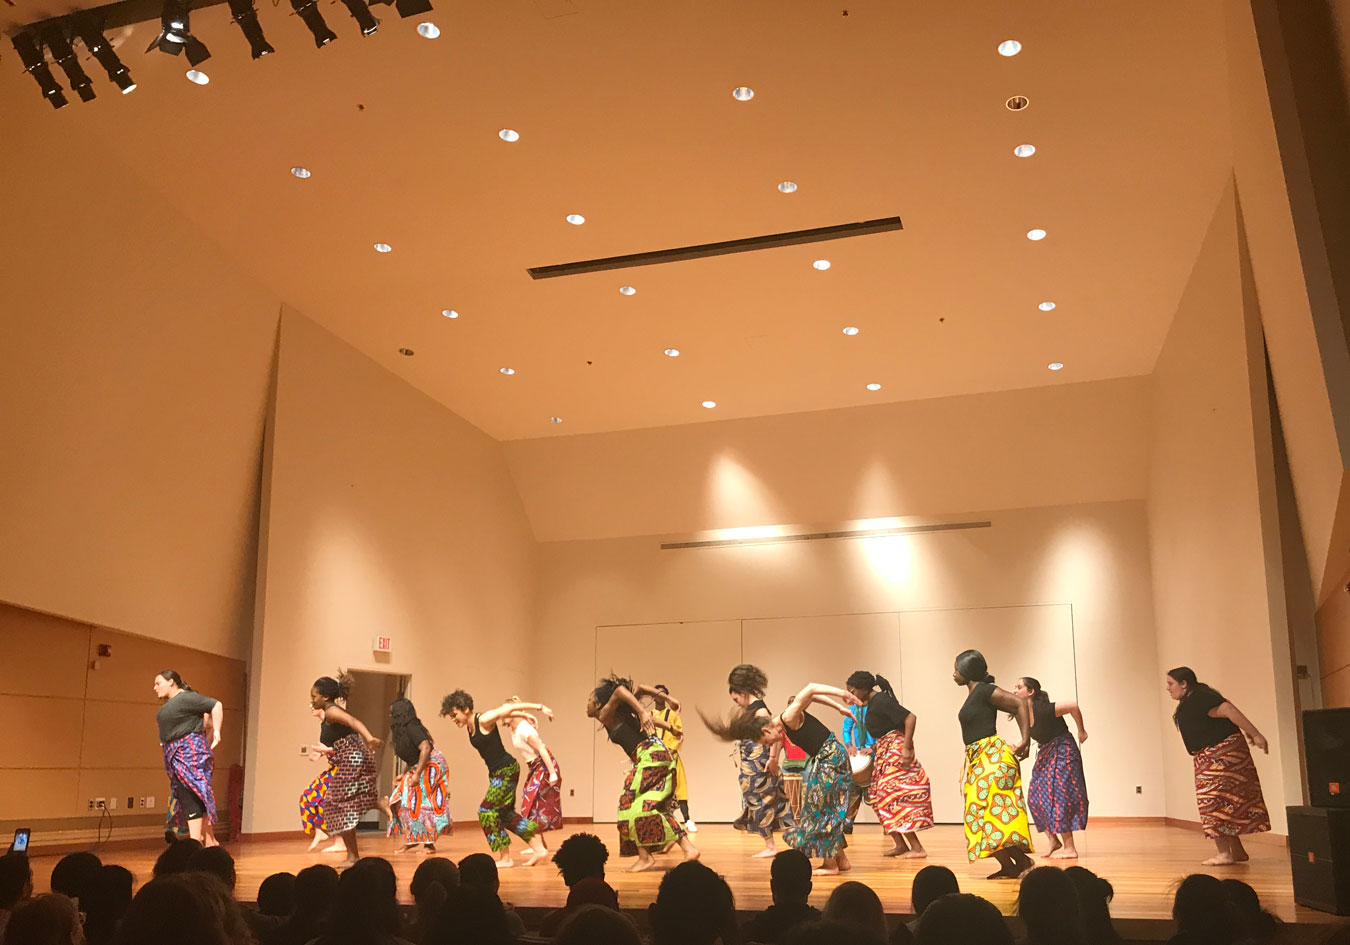 Students perform in the semi-annual AU Dances performance